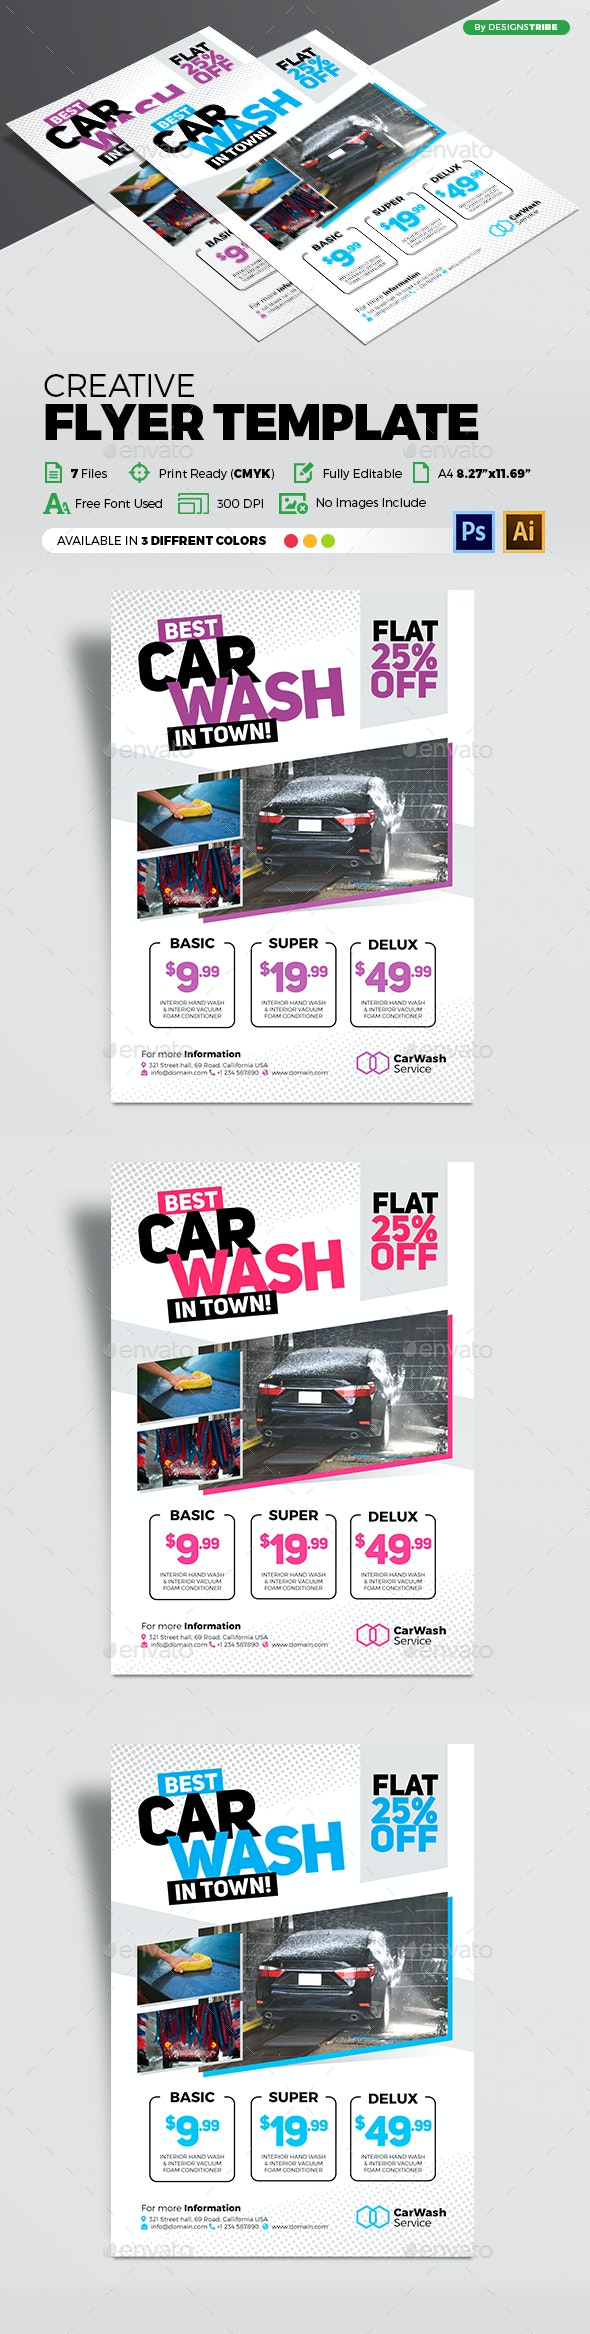 Car Wash Flyer Template - Commerce Flyers